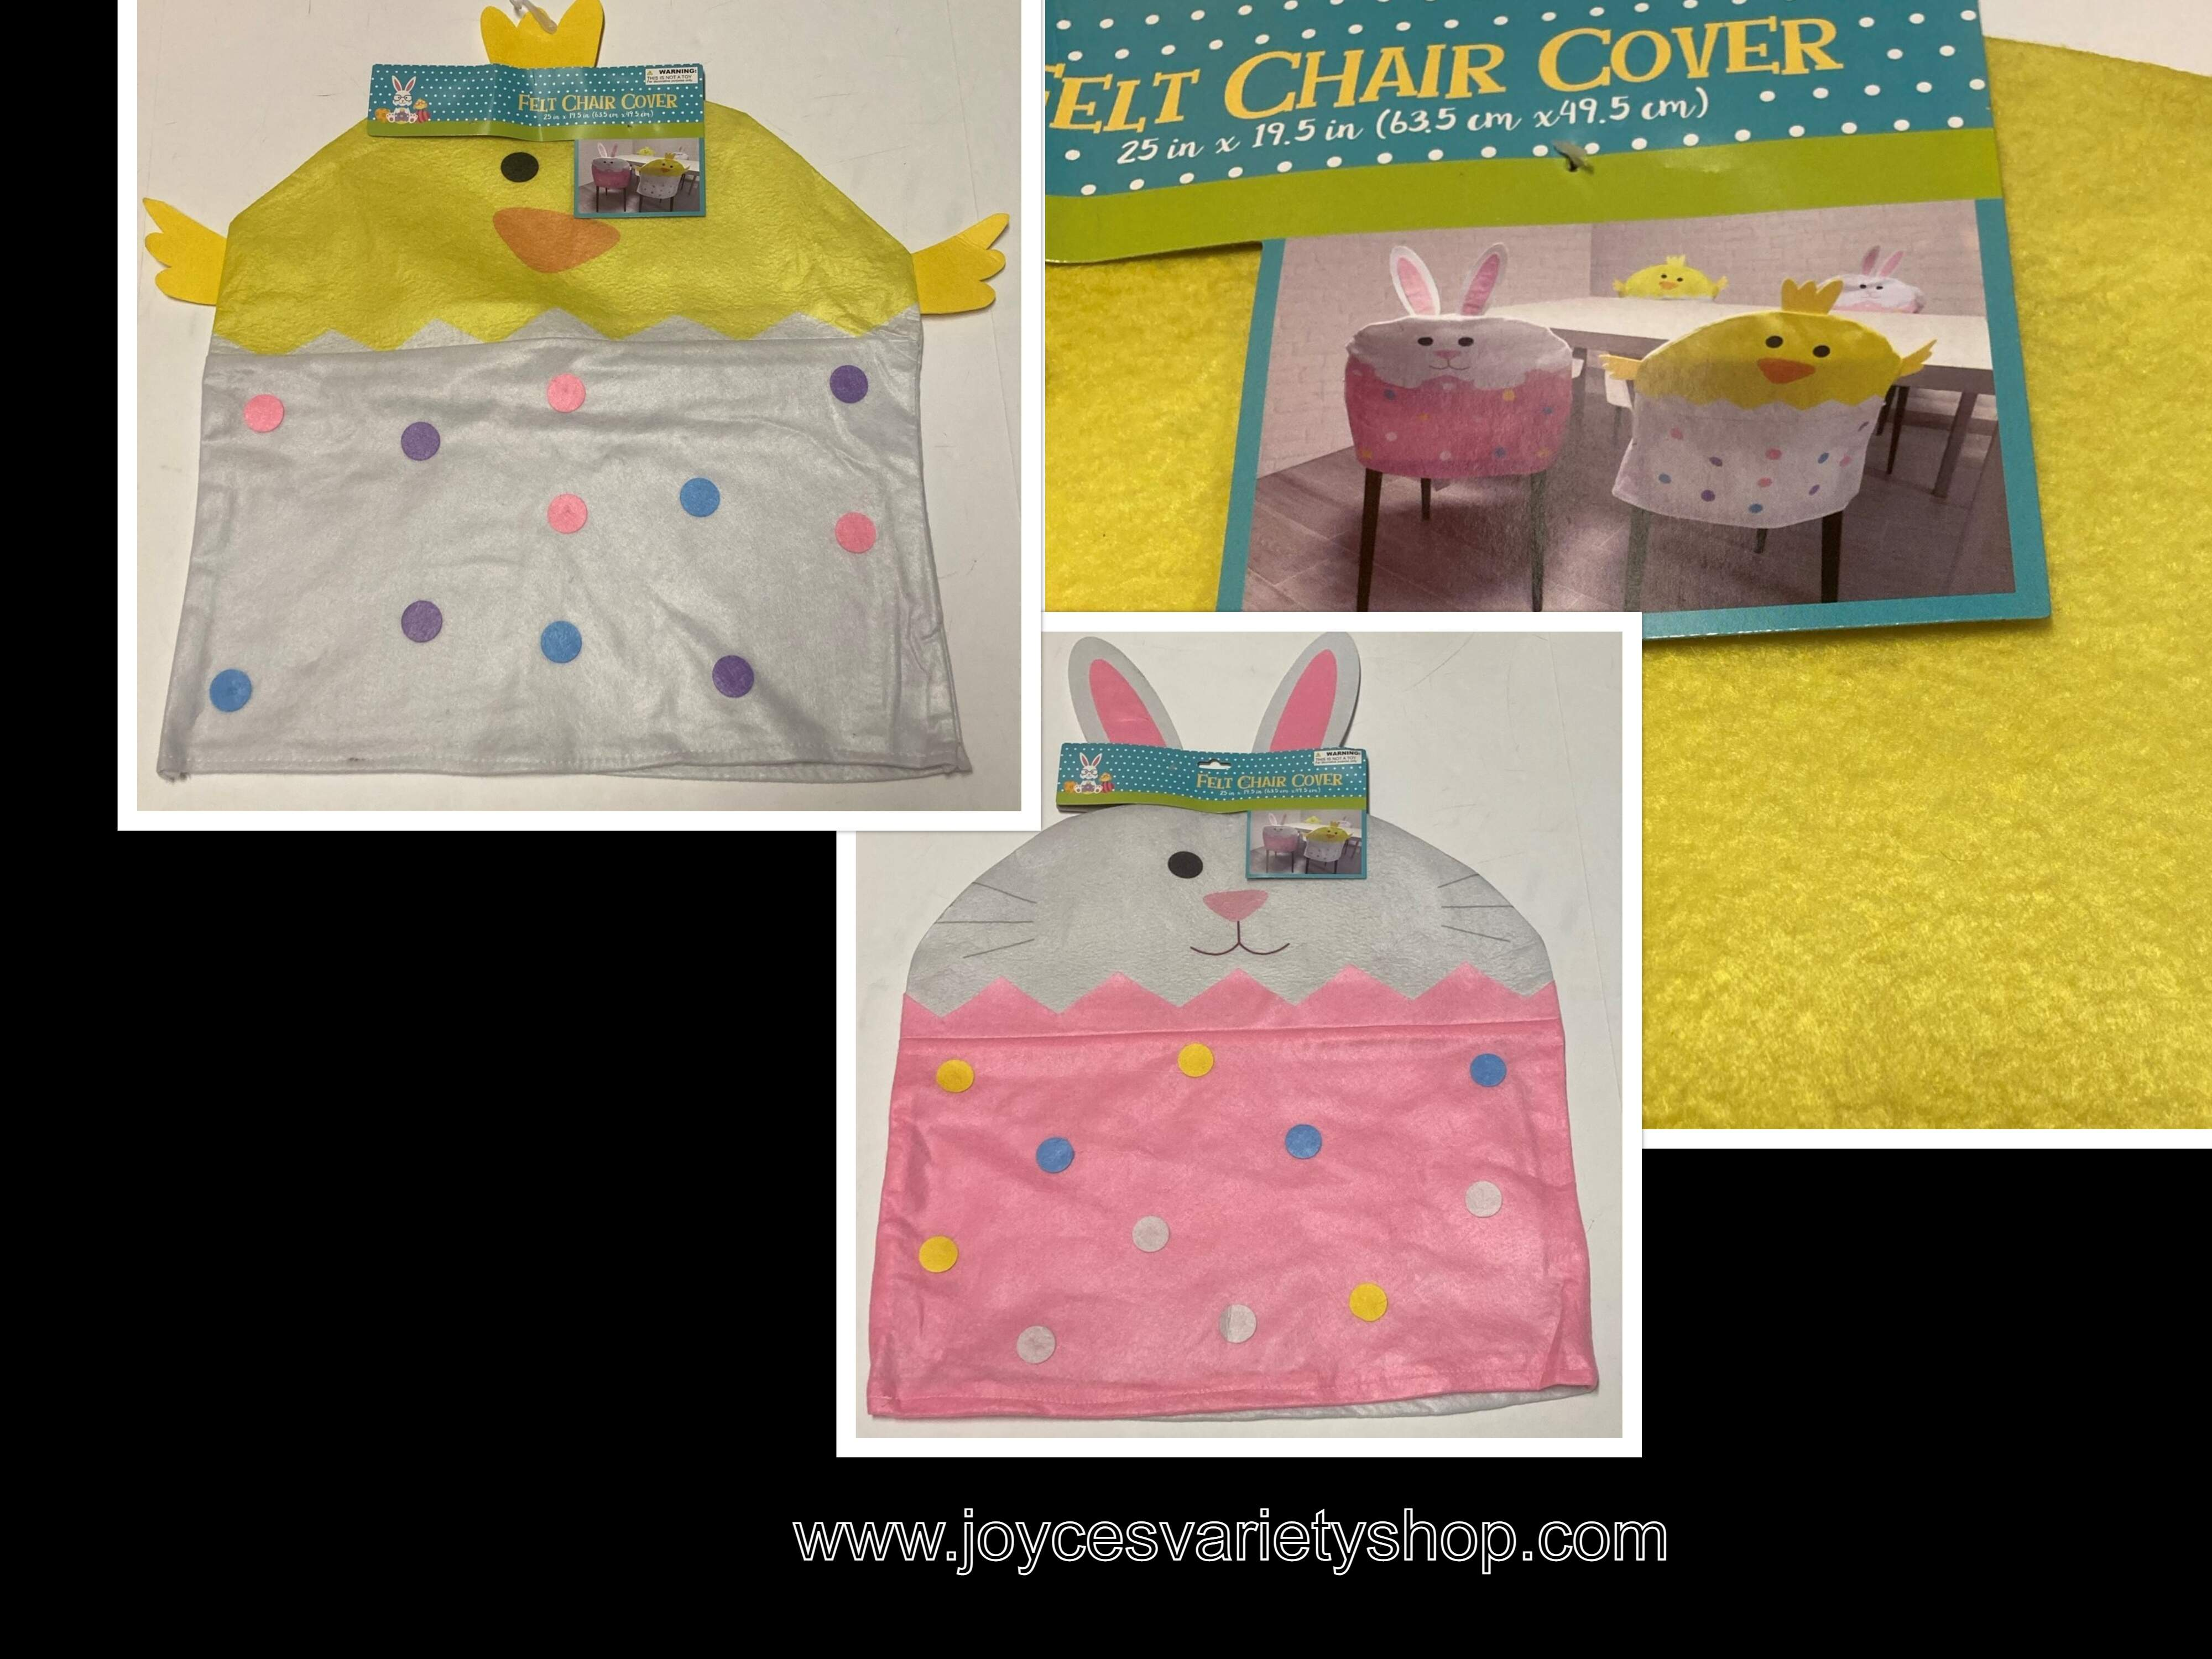 "Felt Chair Cover 25"" x 19.5"" Decor Choice Lil Chic or Bunny Choice"